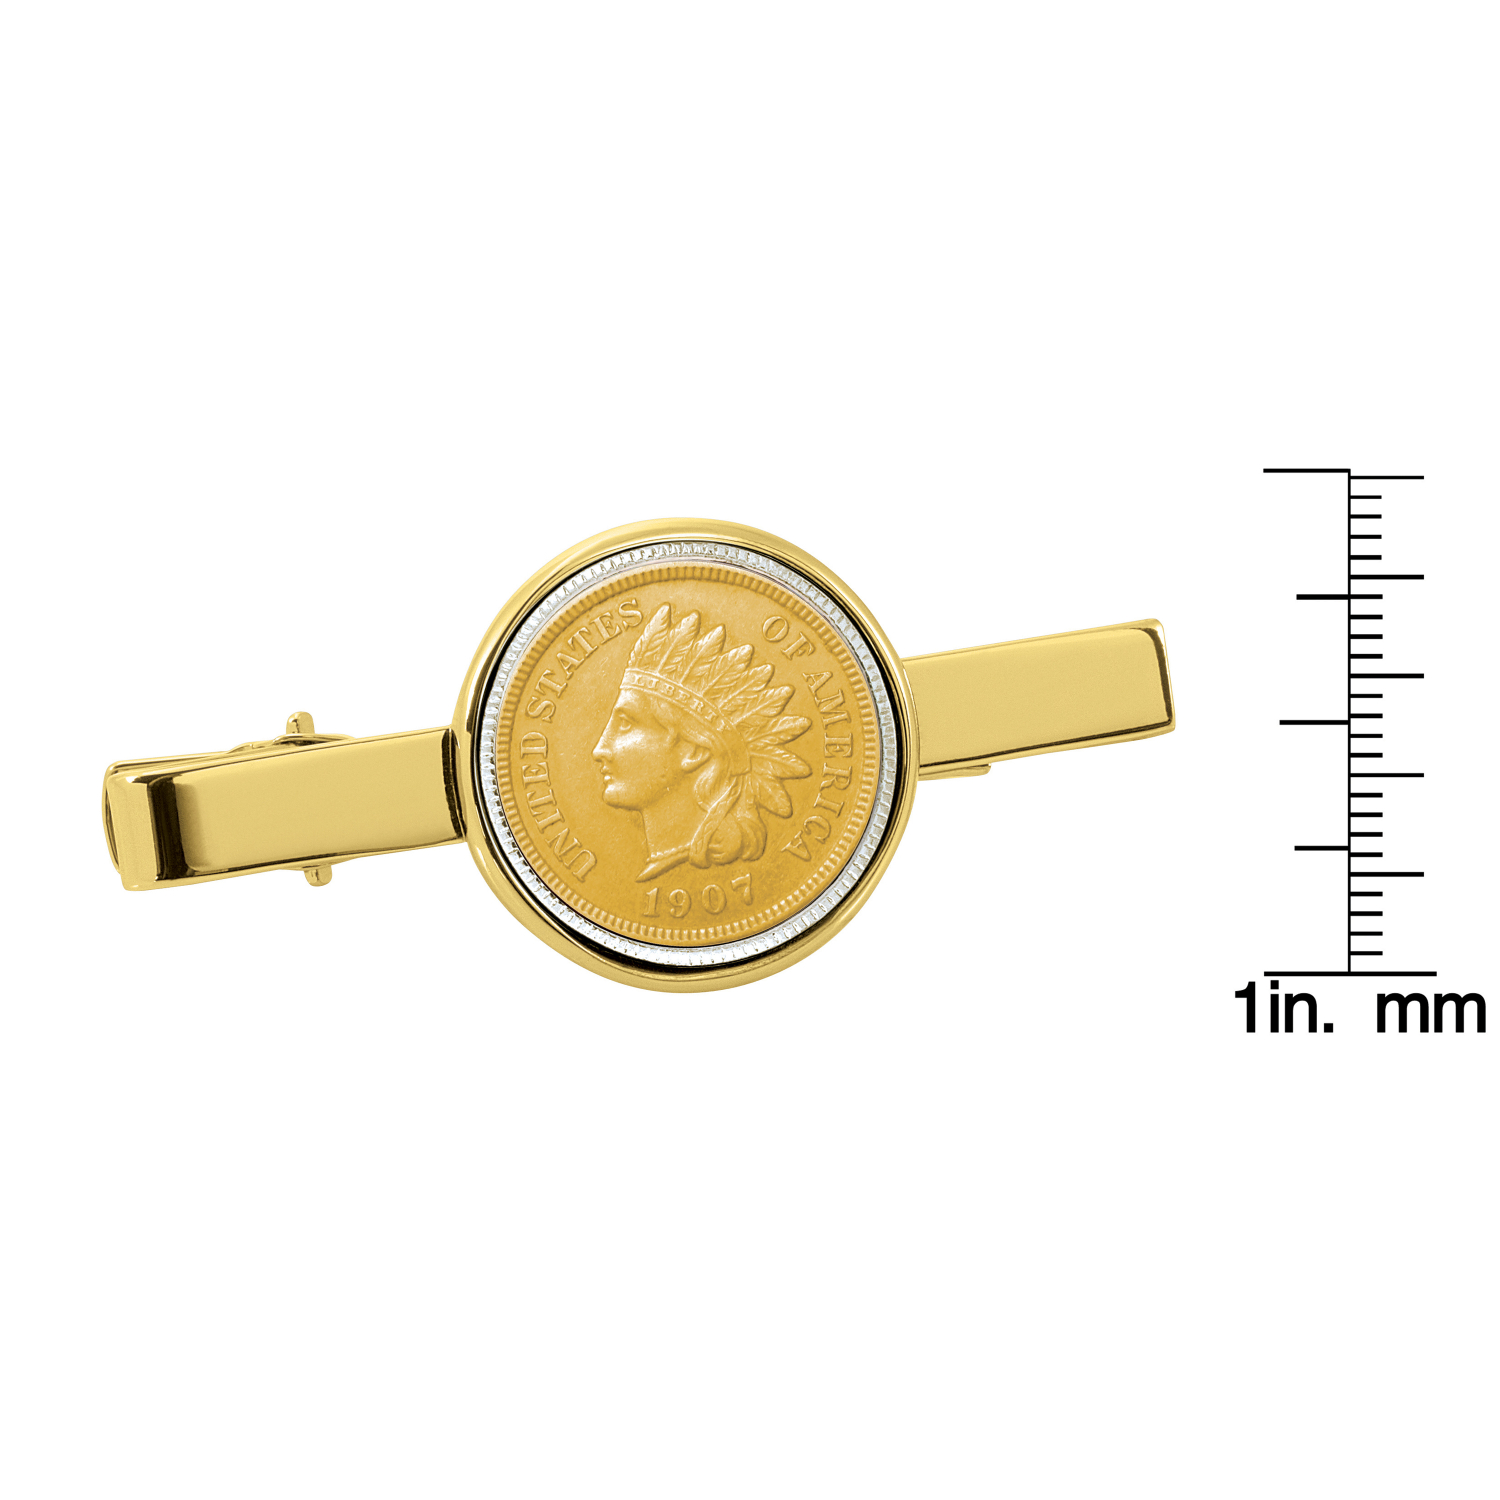 Gold-Layered Indian Penny Gold Tone Tie Clip